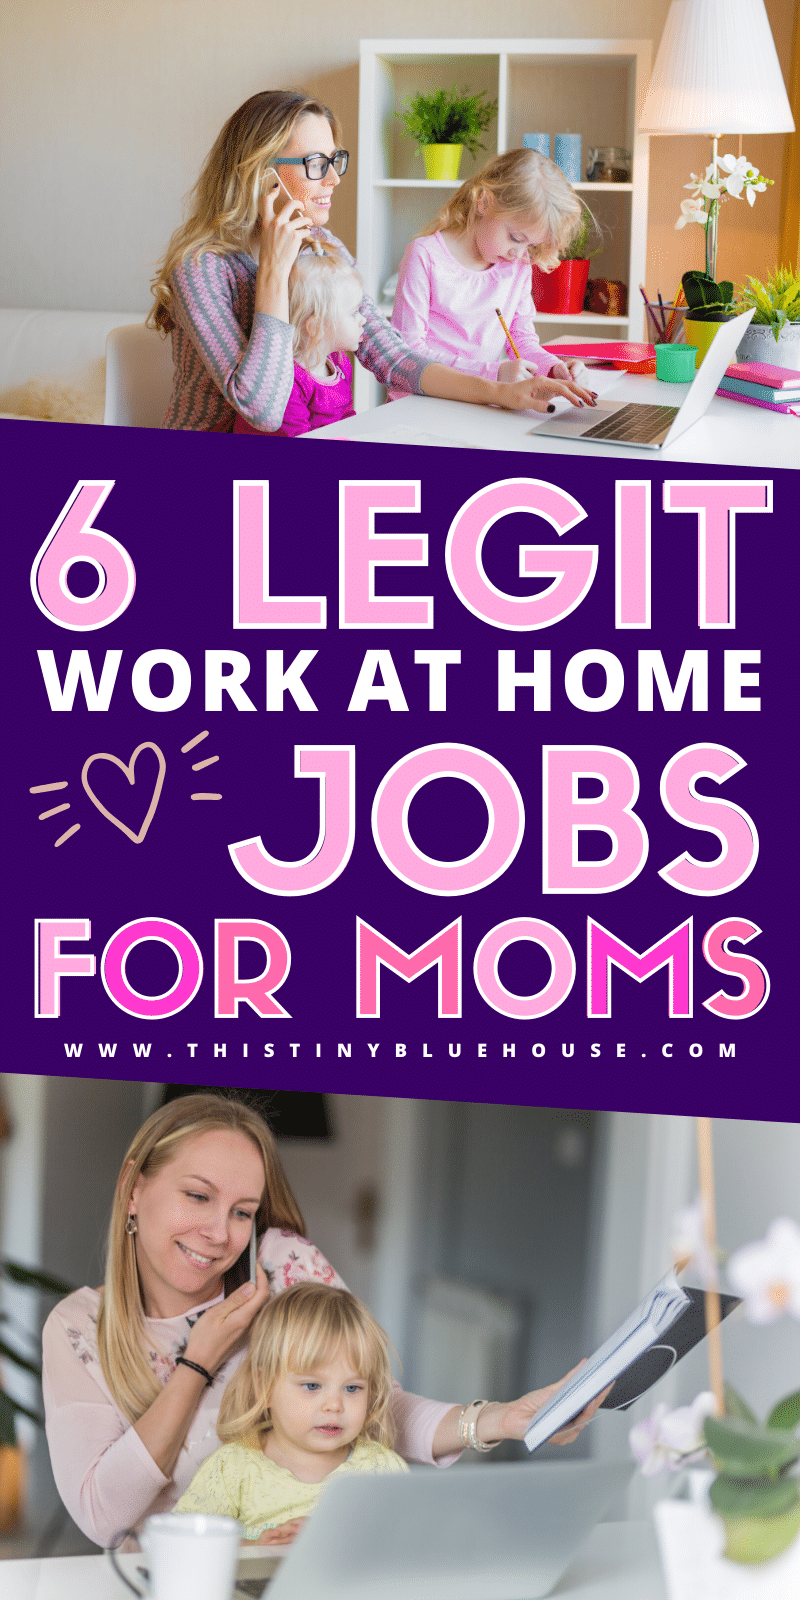 Are you looking to pick up a work at home job while you are stuck at home? Here are 6 legitimate and totally legal ways to start working from home and earning an income without having to ever leave your house. #sidehustles #sidehustlesideas #onlinejobs #legitimateonlinejobs #legalonlinework #onlinejobsfromhome #stayathomejobs #onlinejobsthatactuallymakemoney #waystomakemoneyfromhome #realwaystomakemoneyfromhome